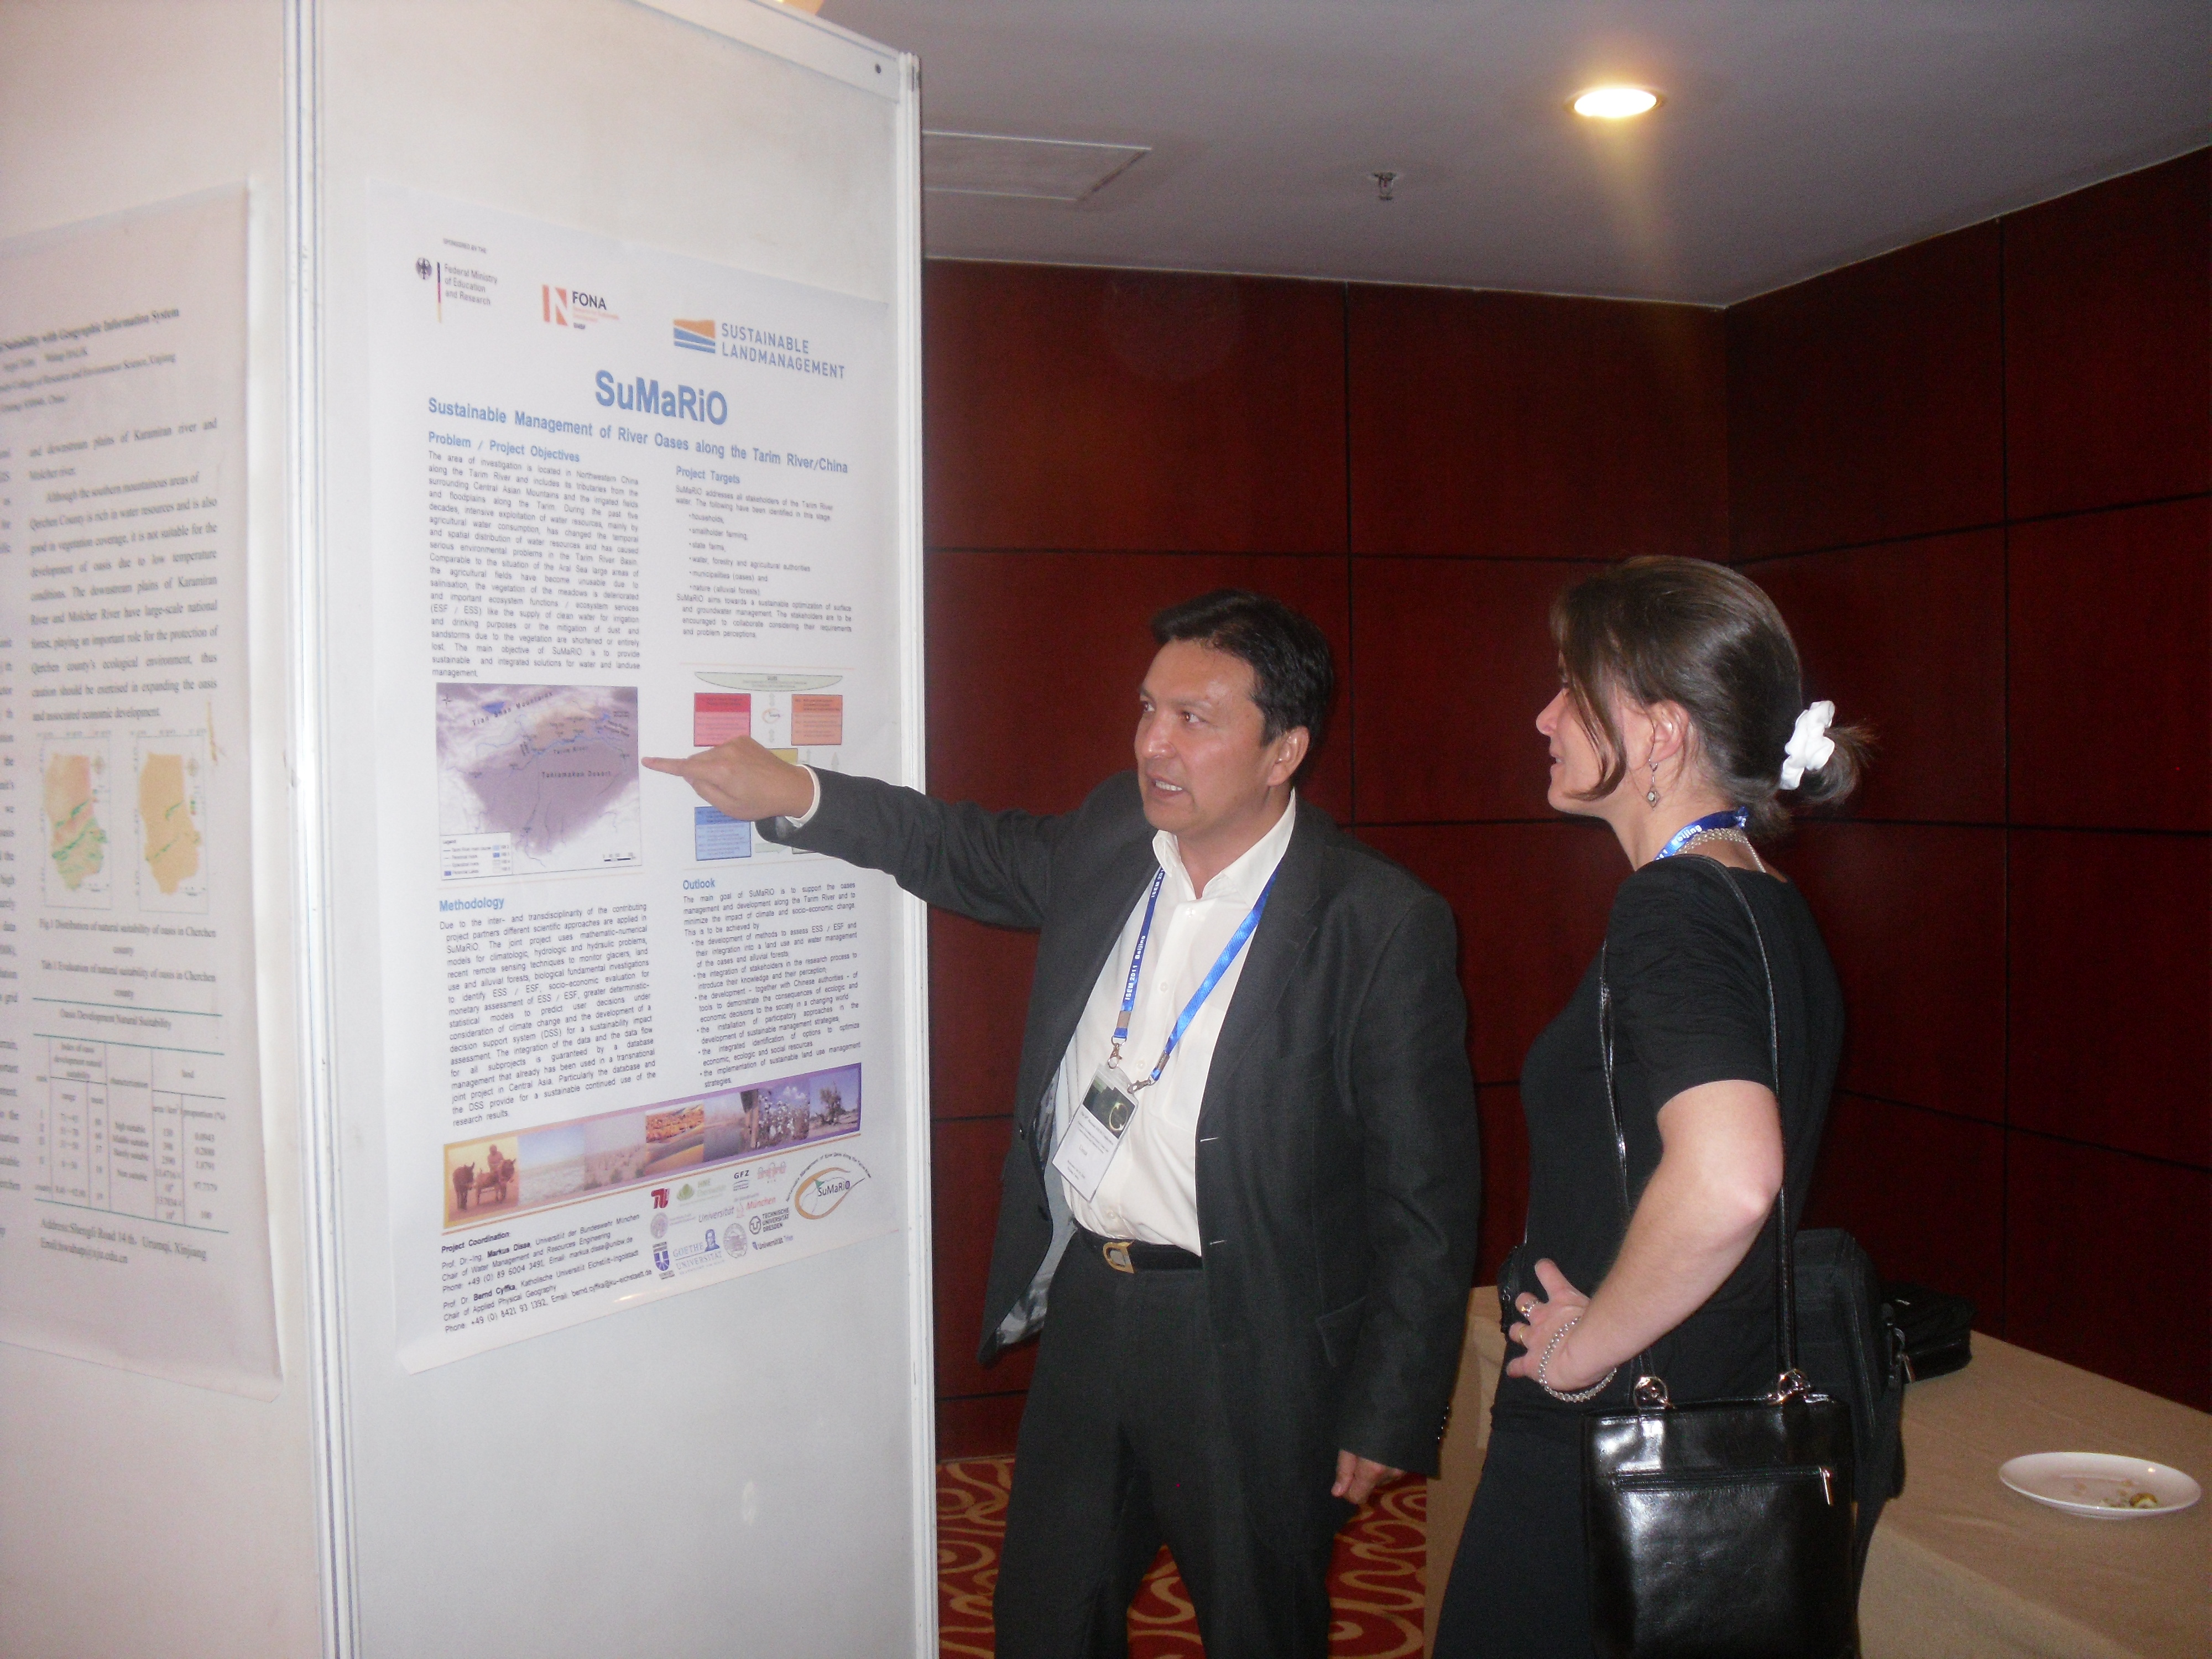 Prof. Ümüt Halik in front of the SuMaRiO Poster presentation